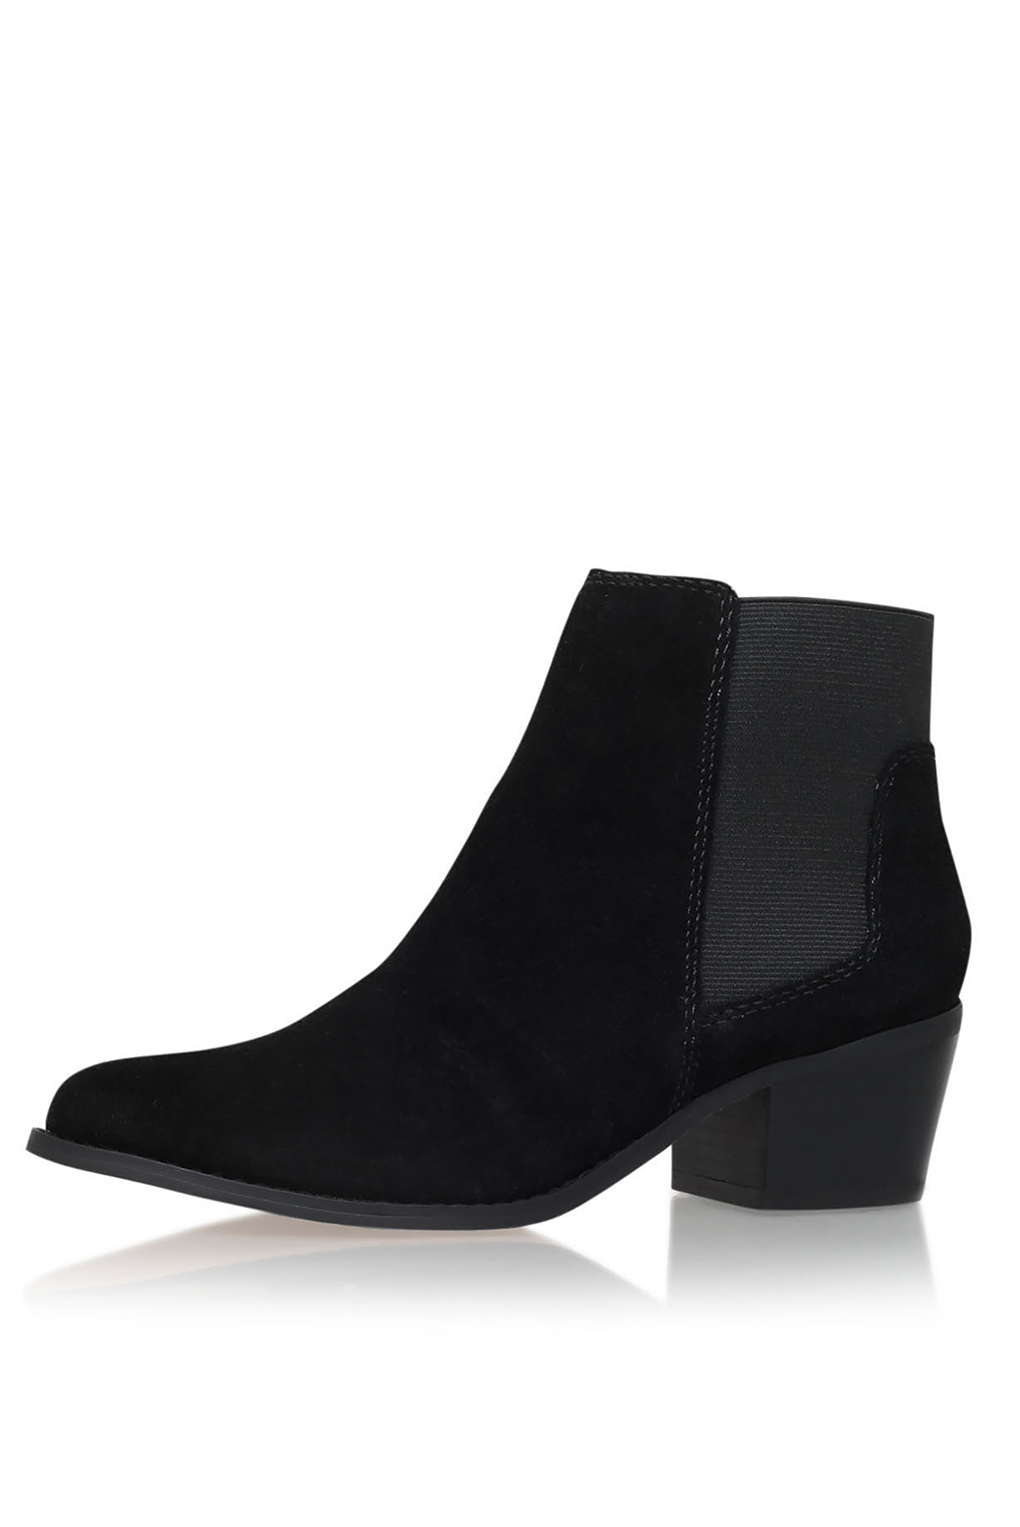 Low Heel Ankle Boots 8Eq4dDim